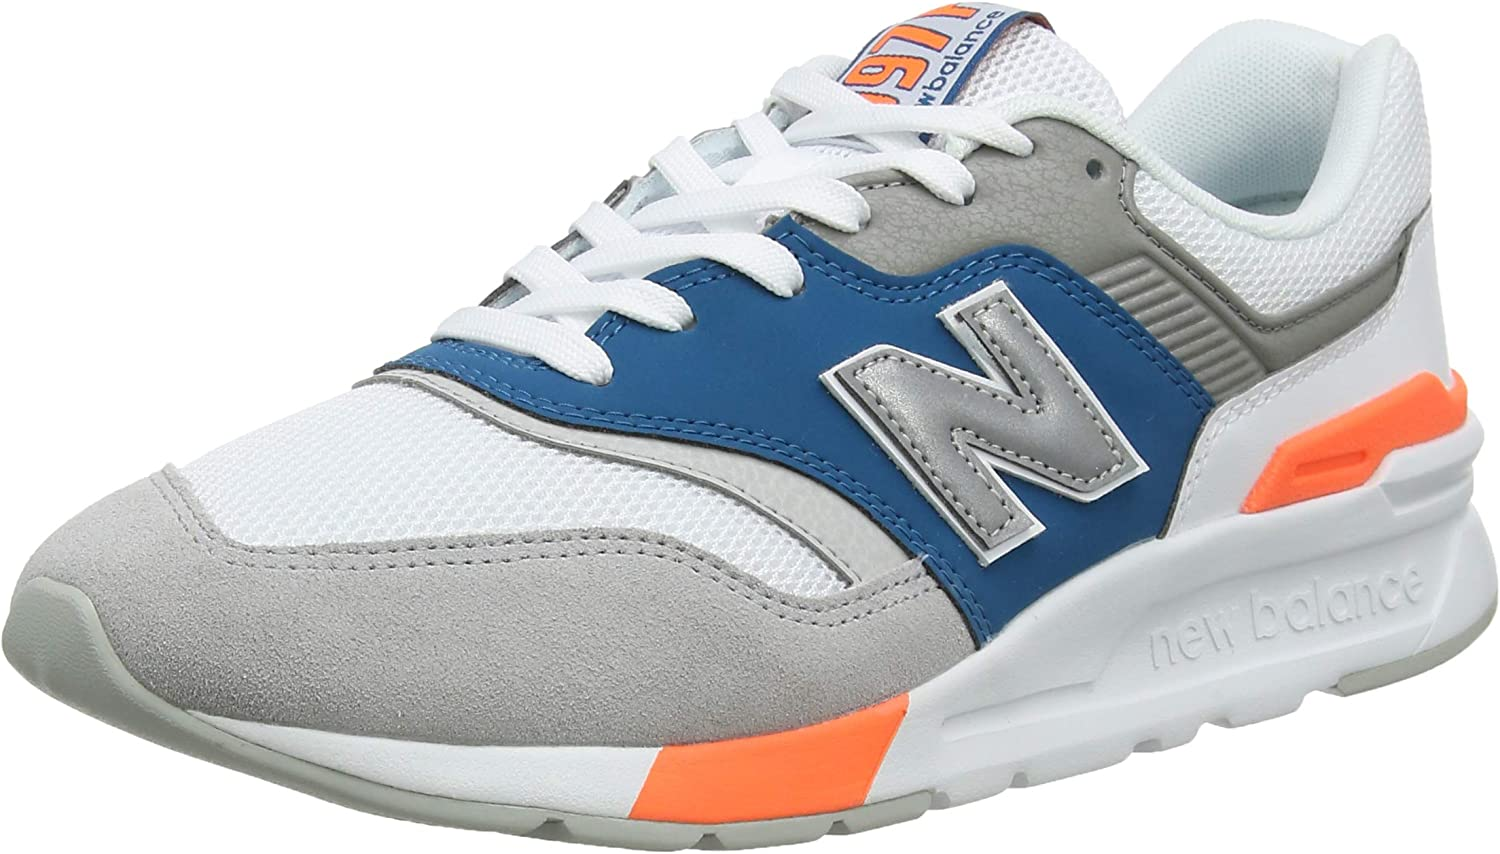 New Balance Men's 997 Suede Trainers, White